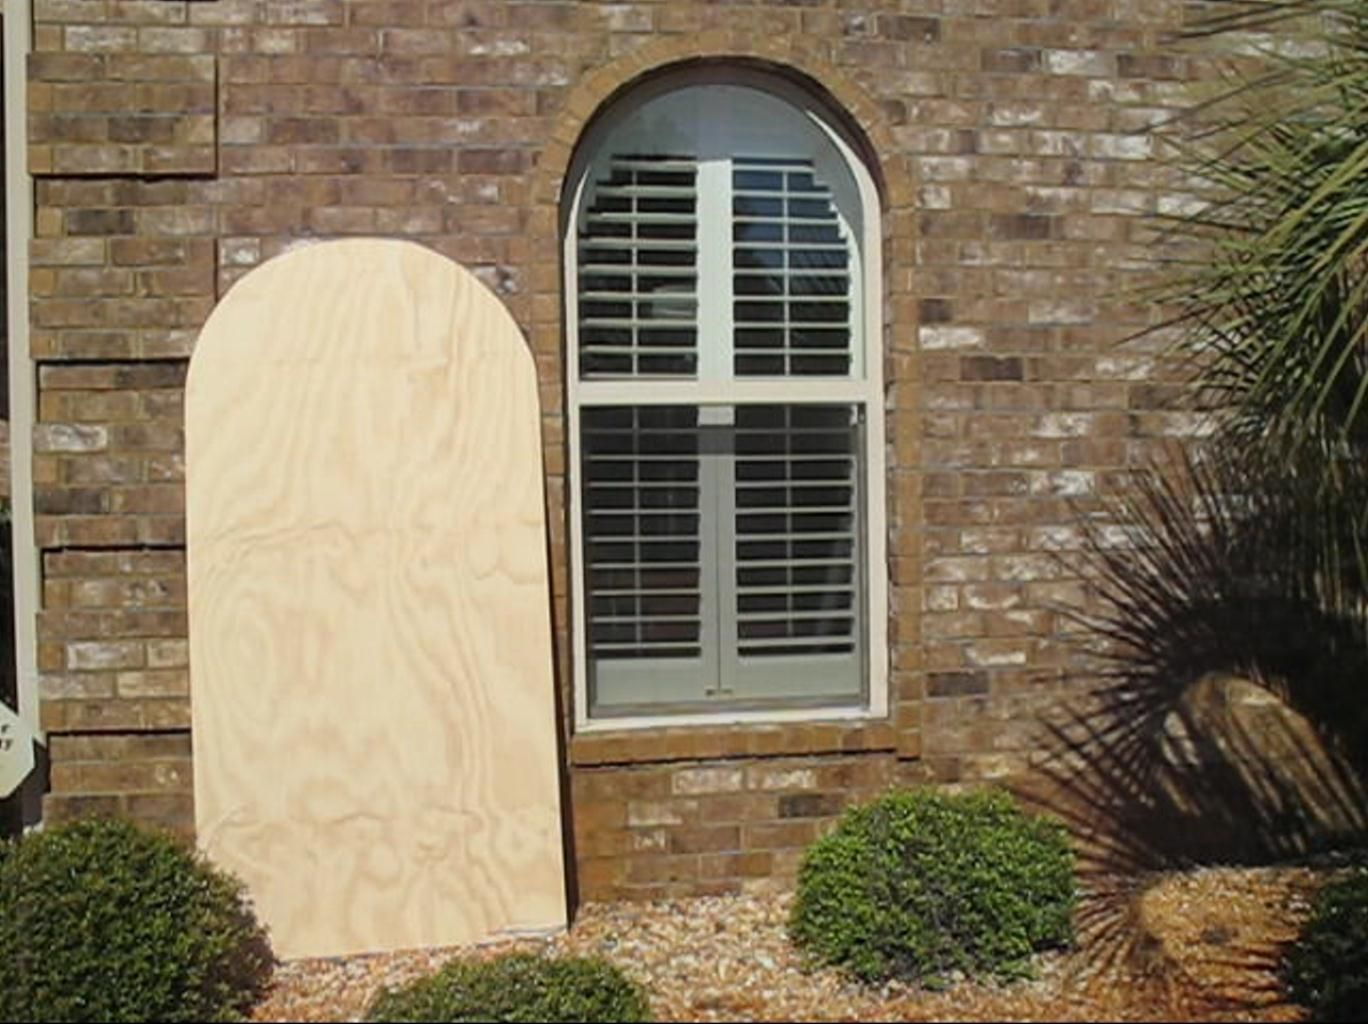 How To Make Your Own Hurricane Shutters Hurricane Shutters Diy Shutters House Shutters